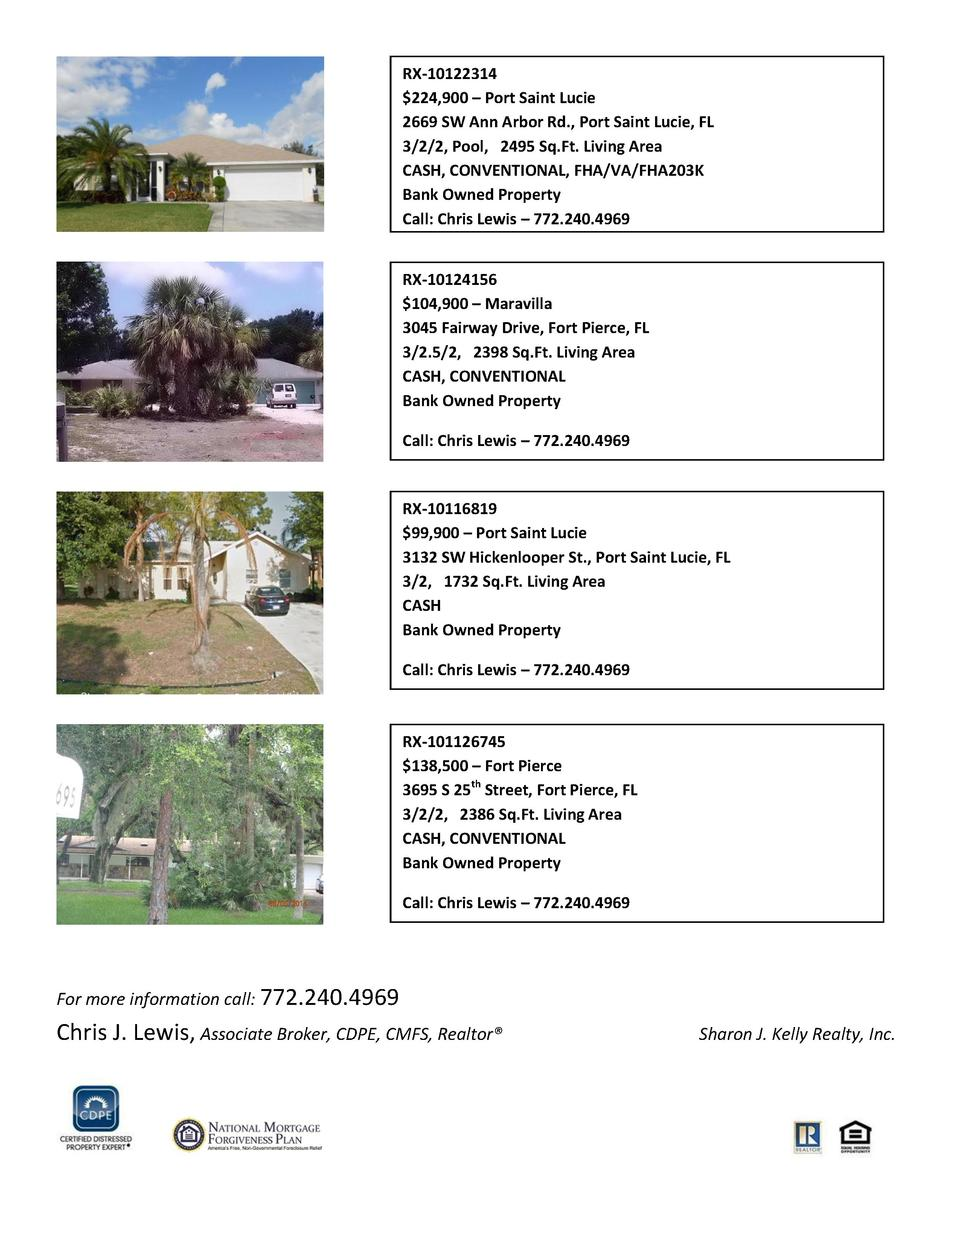 RX-10122314  224,900     Port Saint Lucie 2669 SW Ann Arbor Rd., Port Saint Lucie, FL 3 2 2, Pool, 2495 Sq.Ft. Living Area...